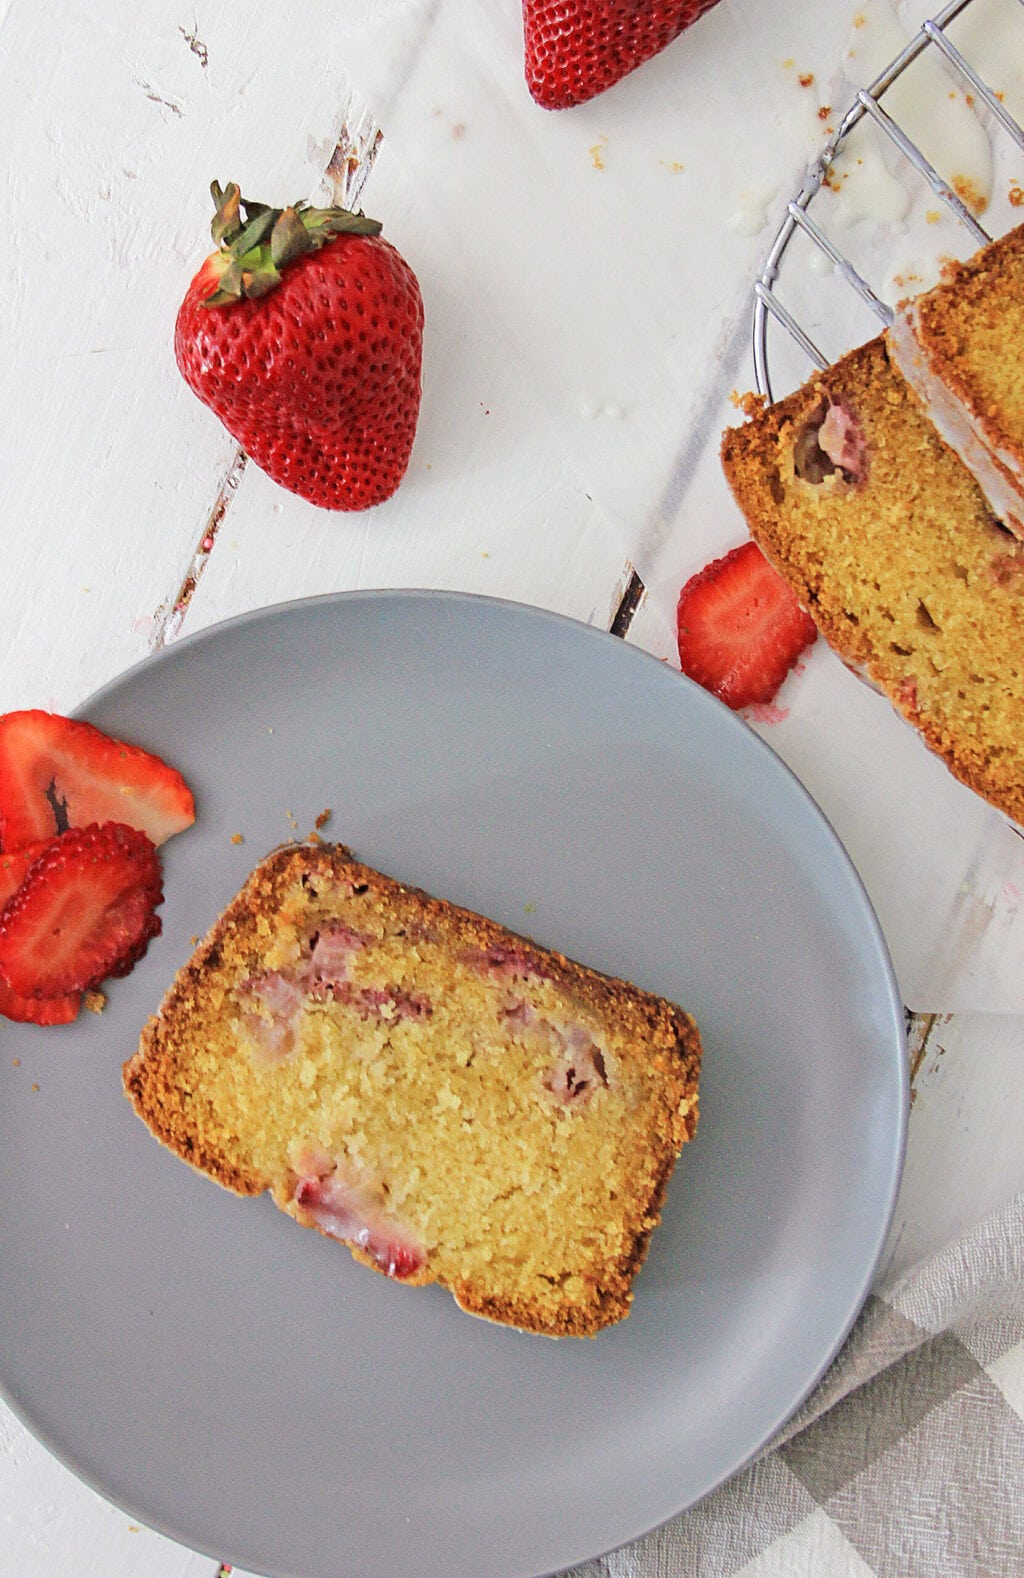 slice of strawberry bread on gray plate next to strawberry bread loaf and strawberries on white wooden table